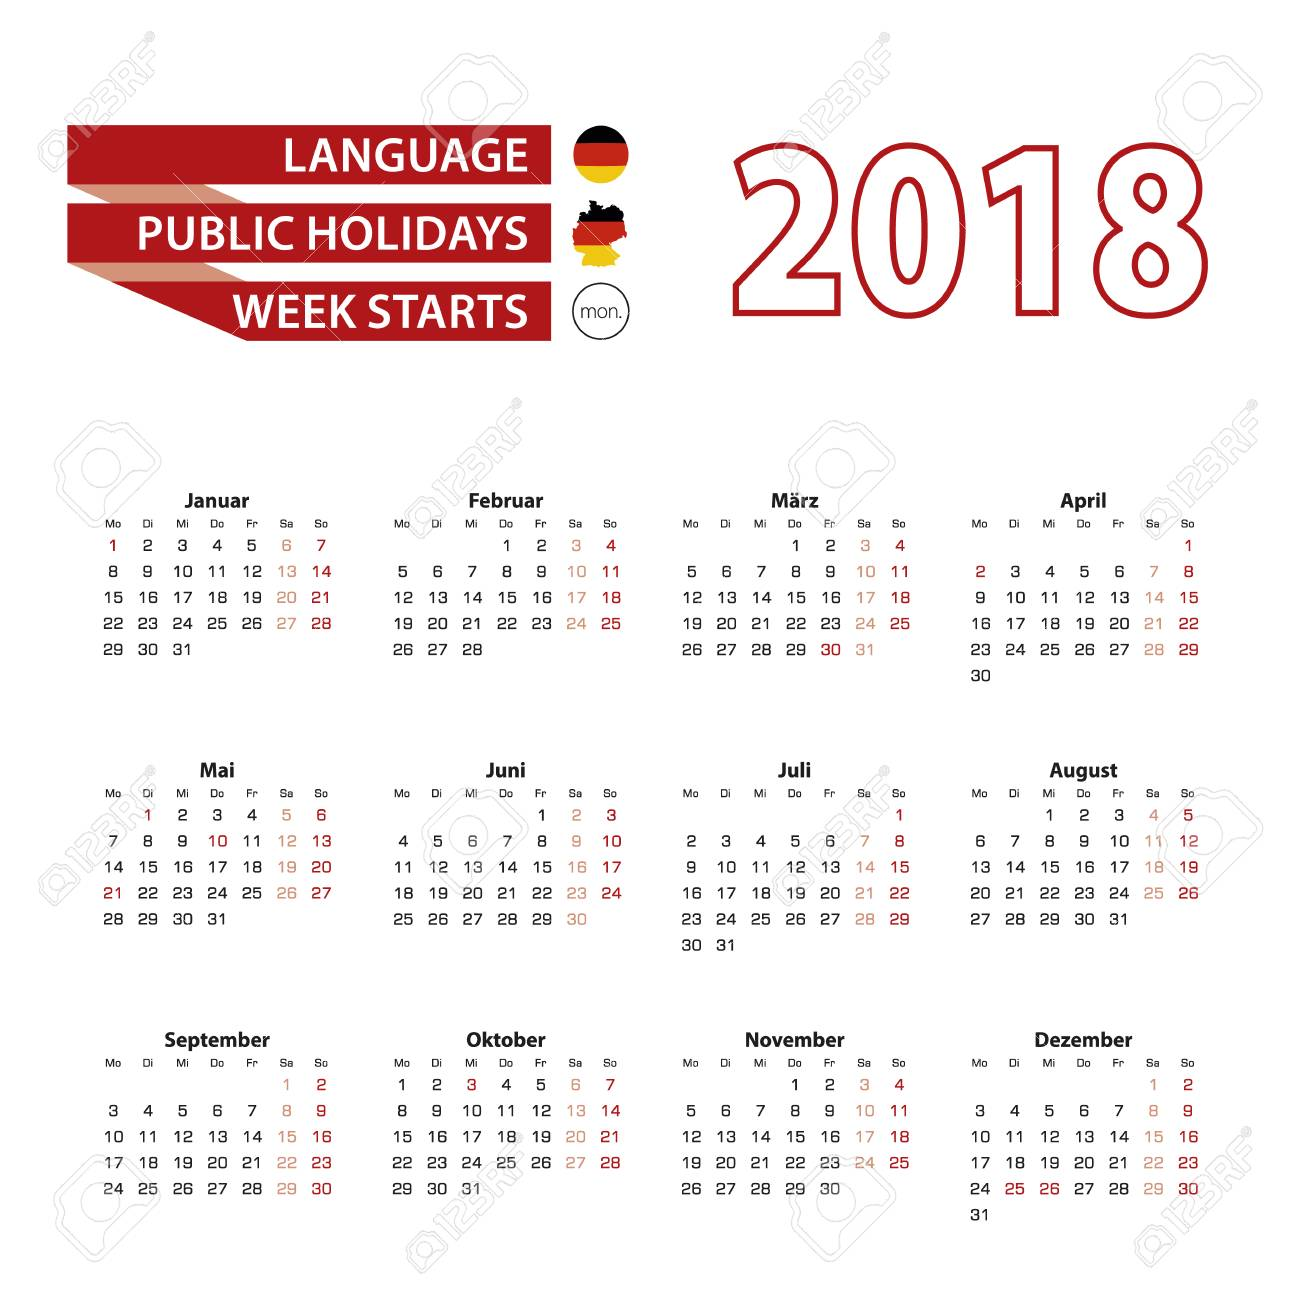 calendar 2018 in germany language with public holidays the country of german in year 2018